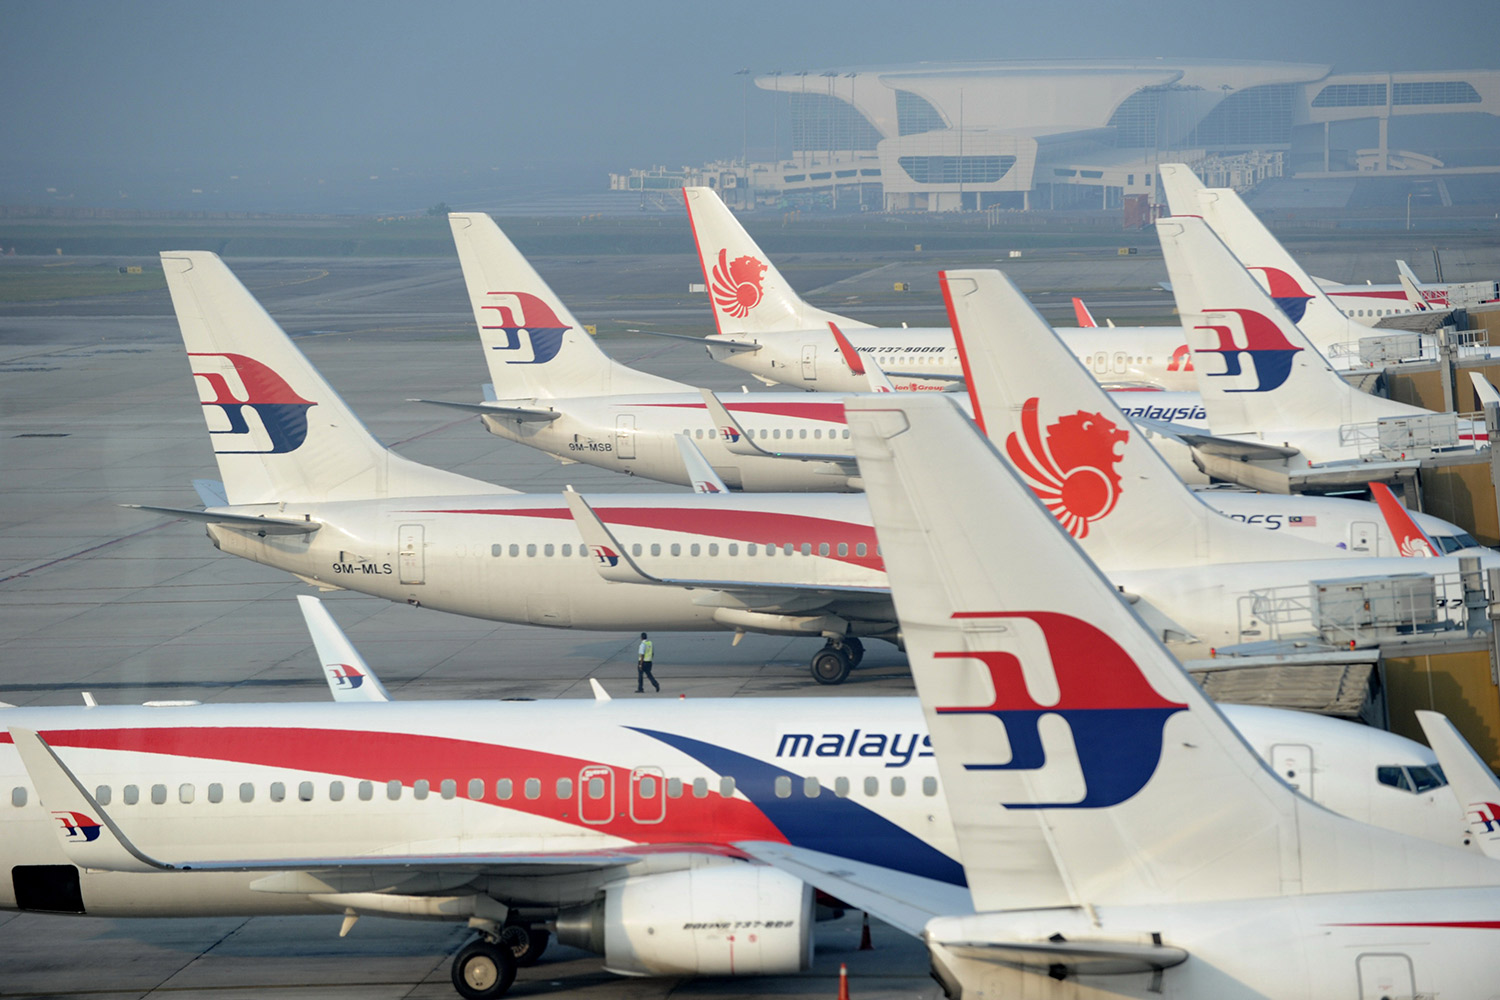 Malaysia Airlines Plane Flown in Wrong Direction